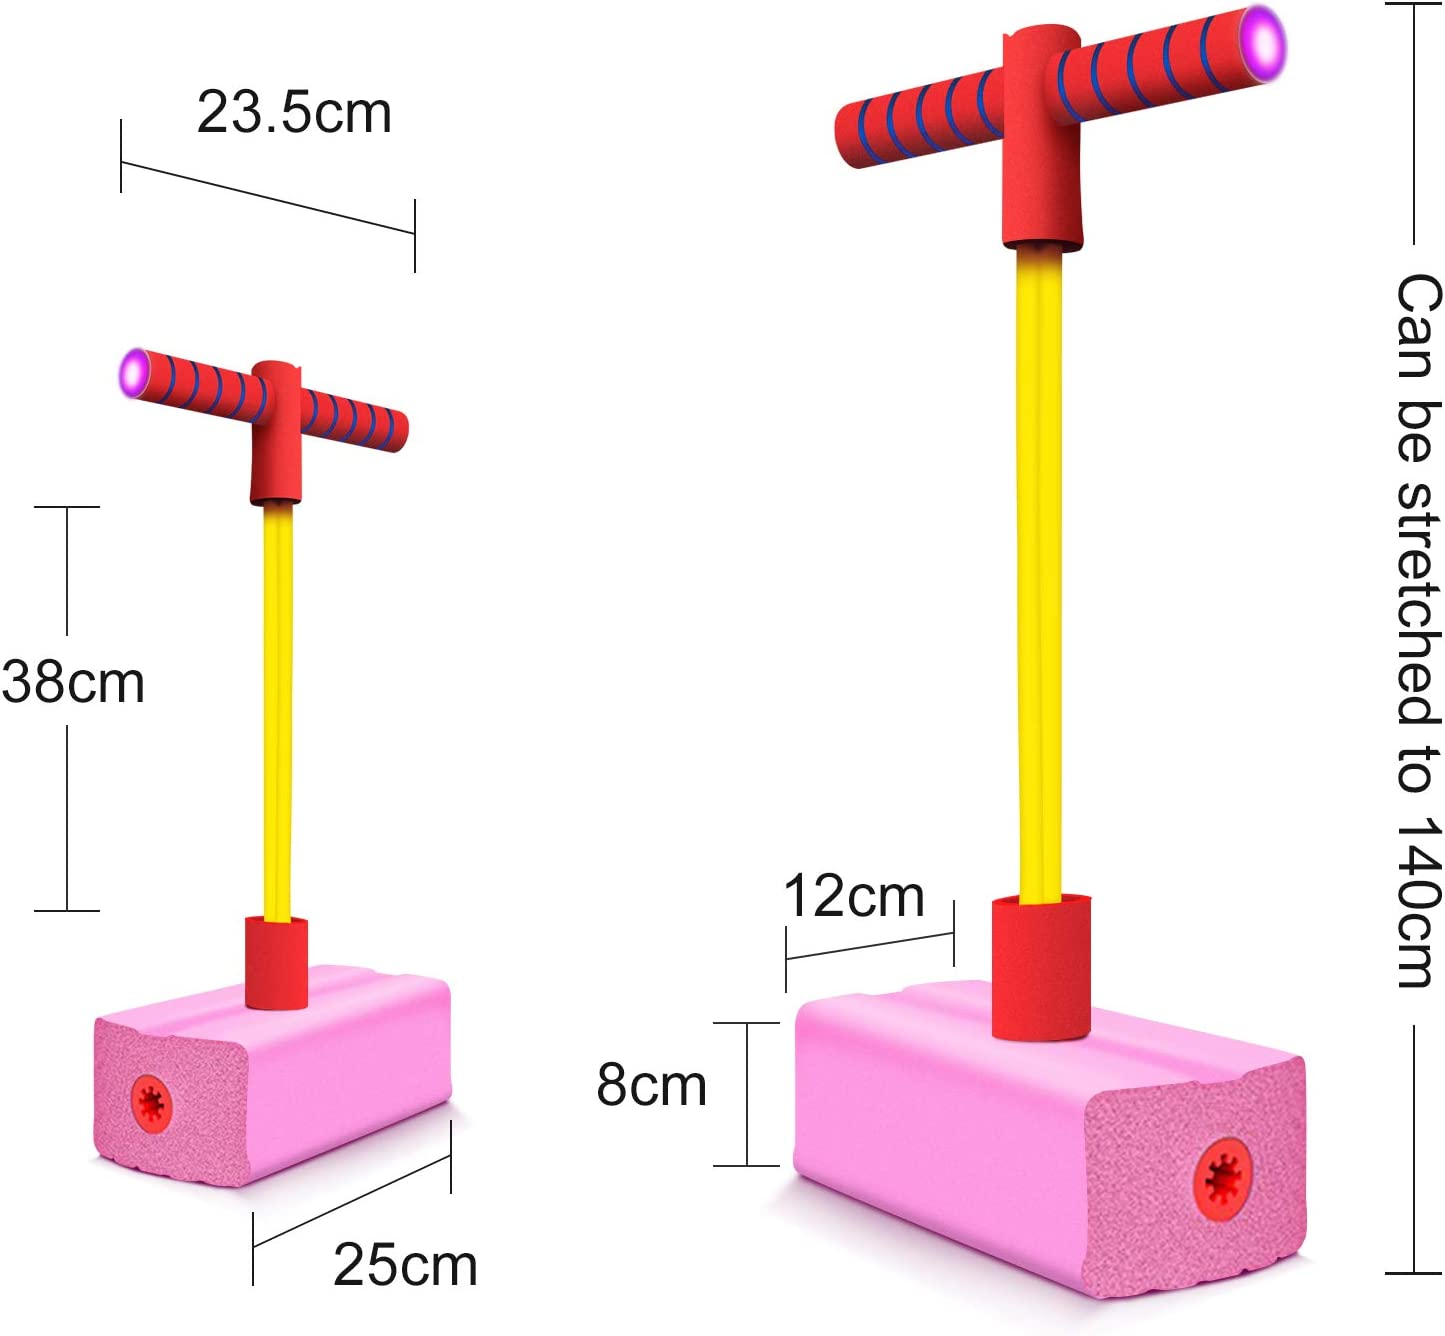 Pink Foam Pogo Jumper for Kids,Fun and Safe Jumping Stick,Foam Bouncing Toy with Flashing Led Lights and Squeaky Sounds for Boys and Girls Ages 3 /and up Toddler,Holds Up to 250 Lbs